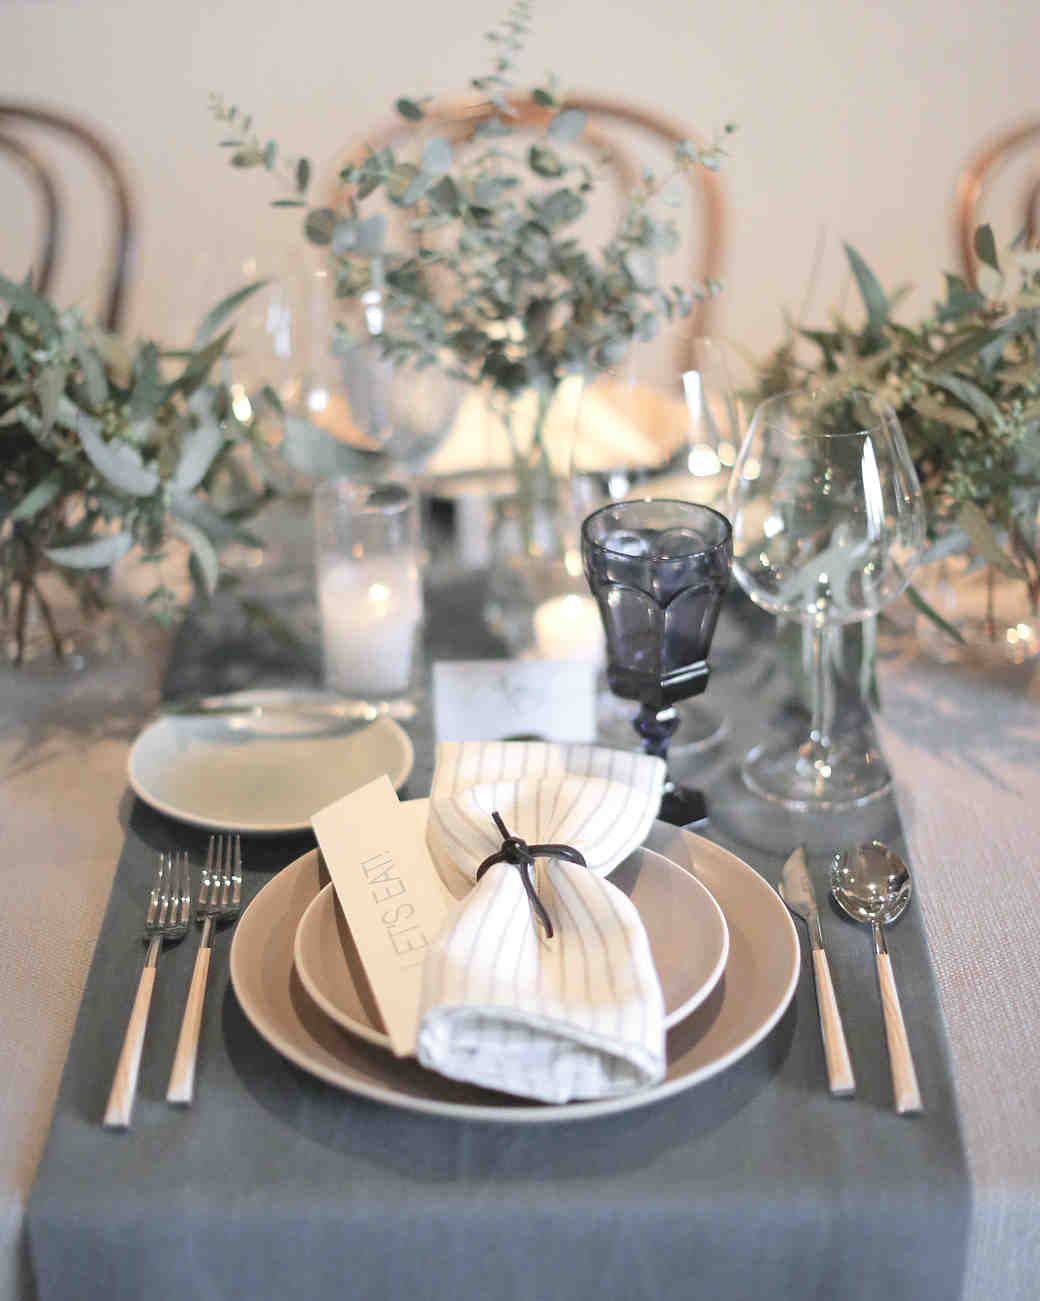 Gray Cream and White Table Settings & 18 Creative Ways to Set Your Reception Tables | Martha Stewart Weddings